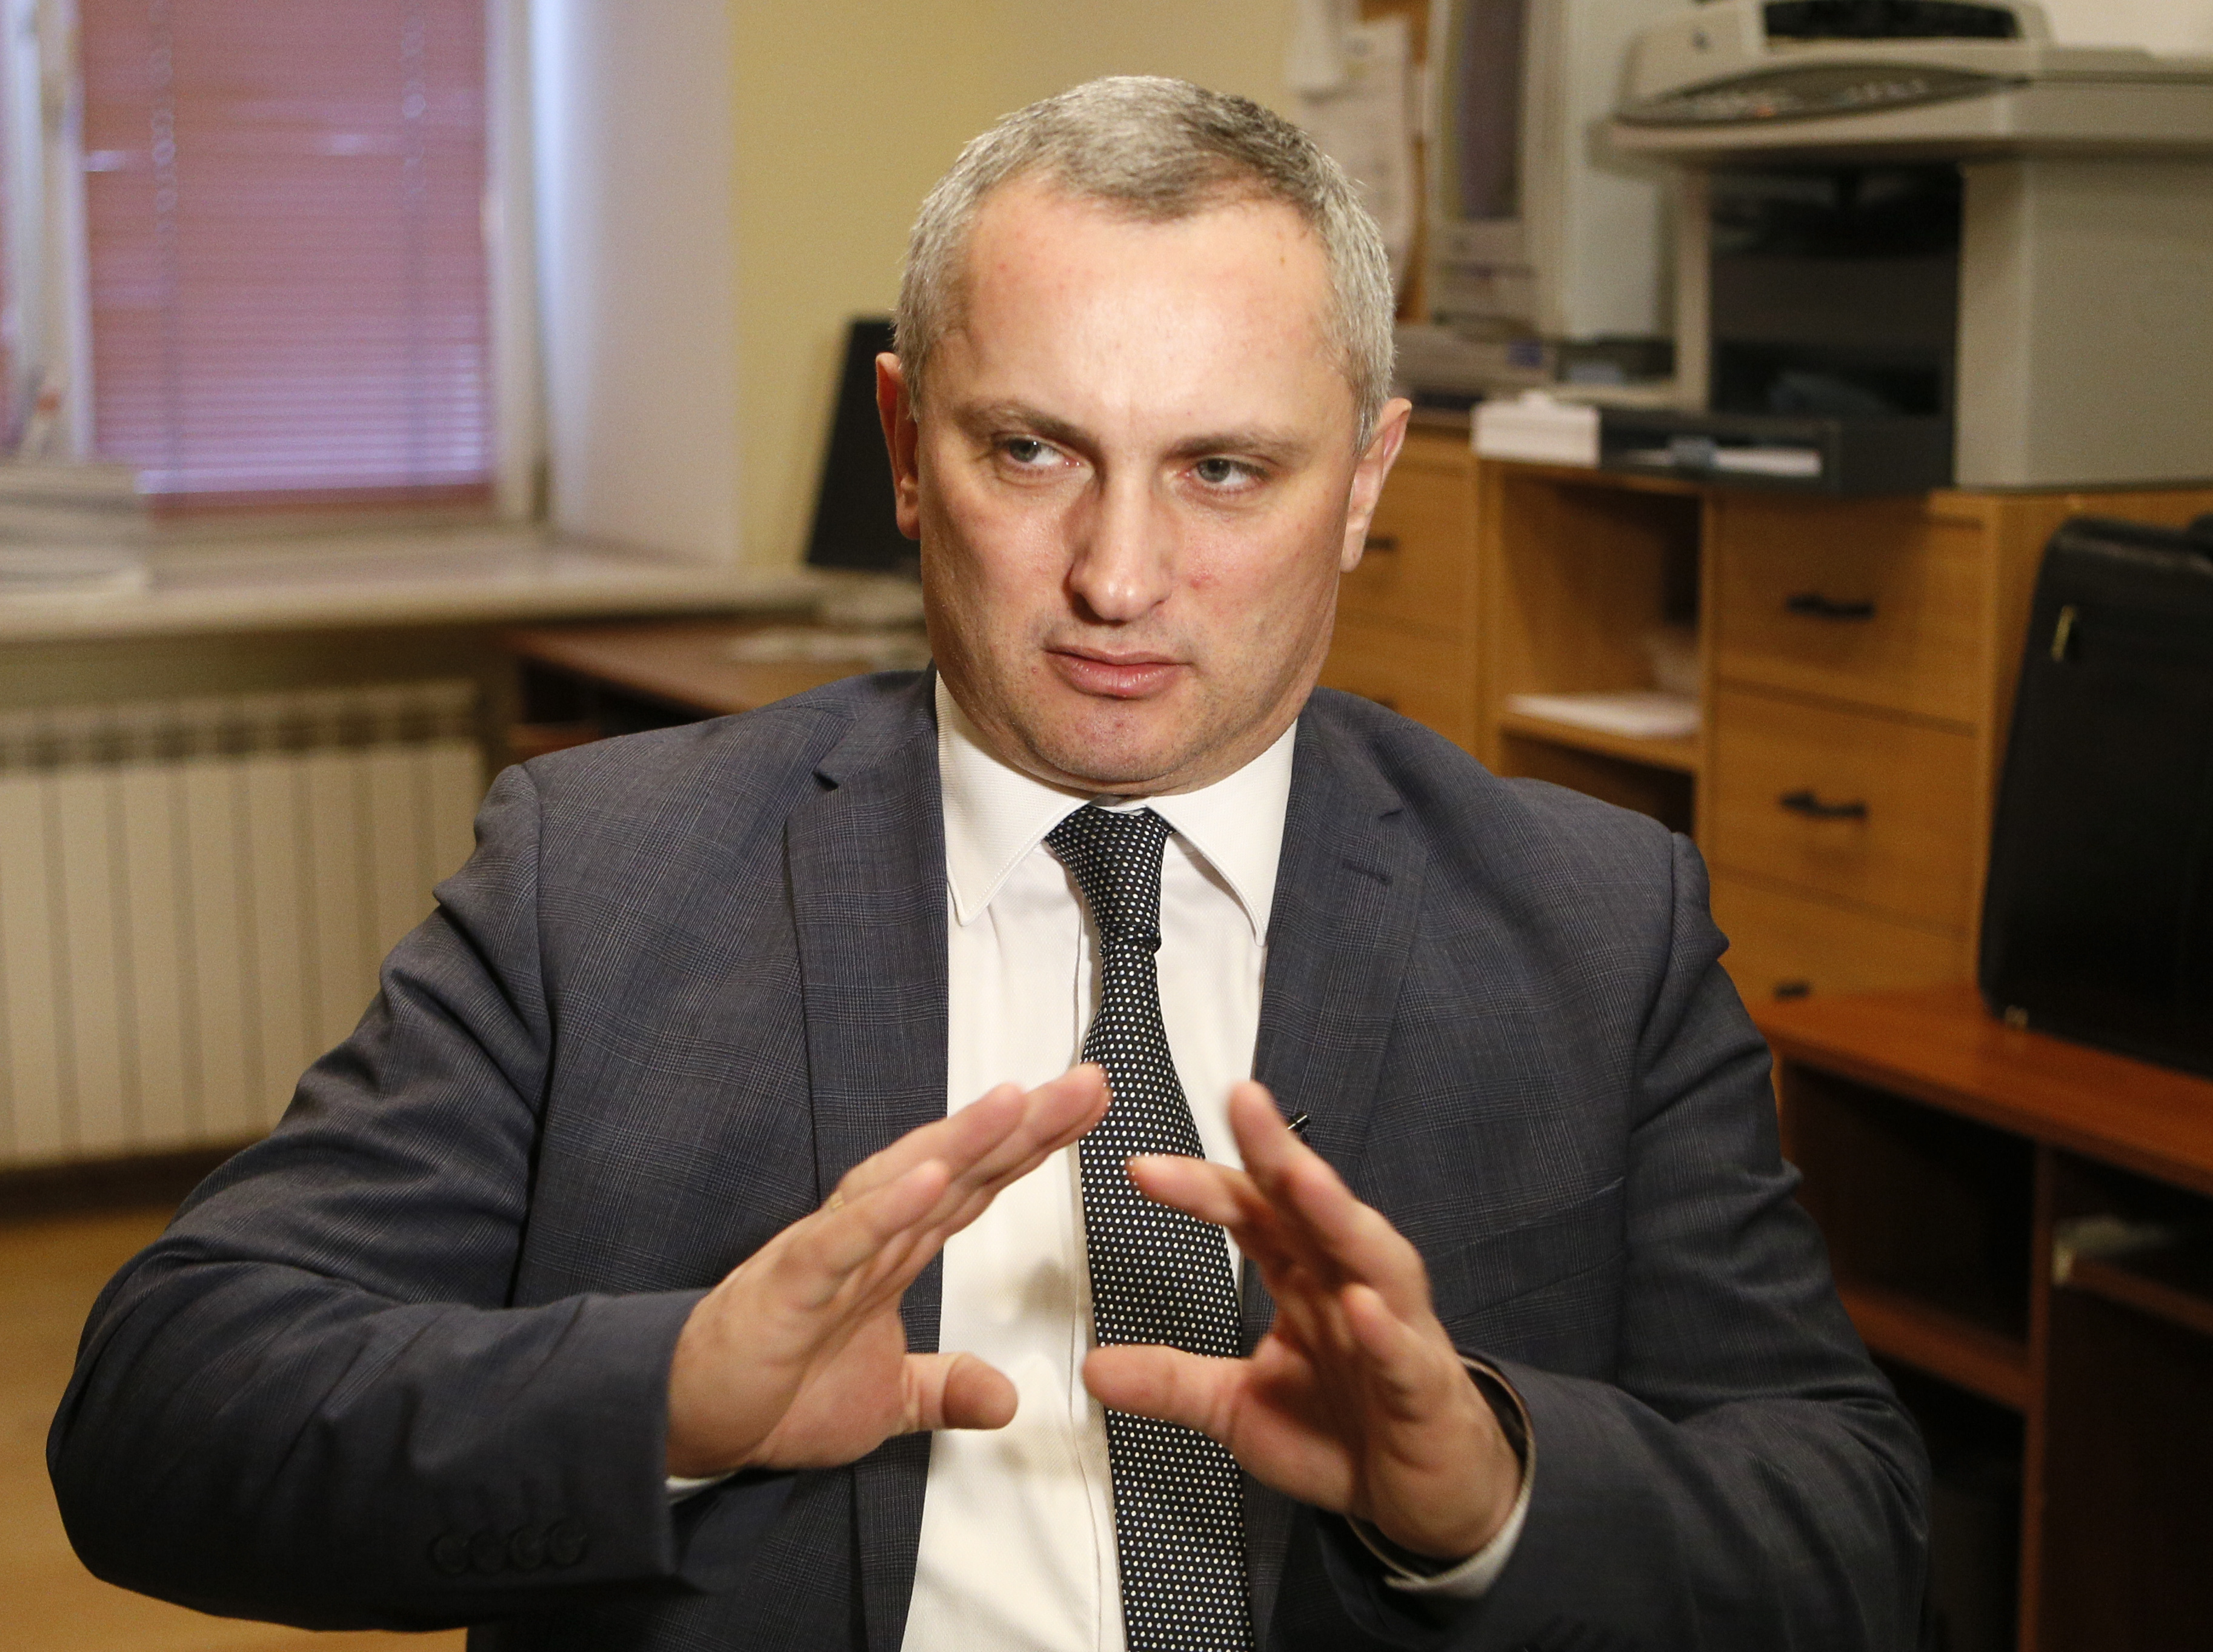 In this photo taken on Tuesday, Feb. 12, 2019, Serhii Demediuk, the head of Ukraine's national CyberPolice unit, talks during an interview with The Associated Press in Kiev, Ukraine, Tuesday, Feb. 12, 2019. Russian hackers are intensifying attacks on the eve of presidential elections in Ukraine, according to the head of Ukraine's cyberpolice Serhii Demediuk. (Efrem Lukatsky/AP)